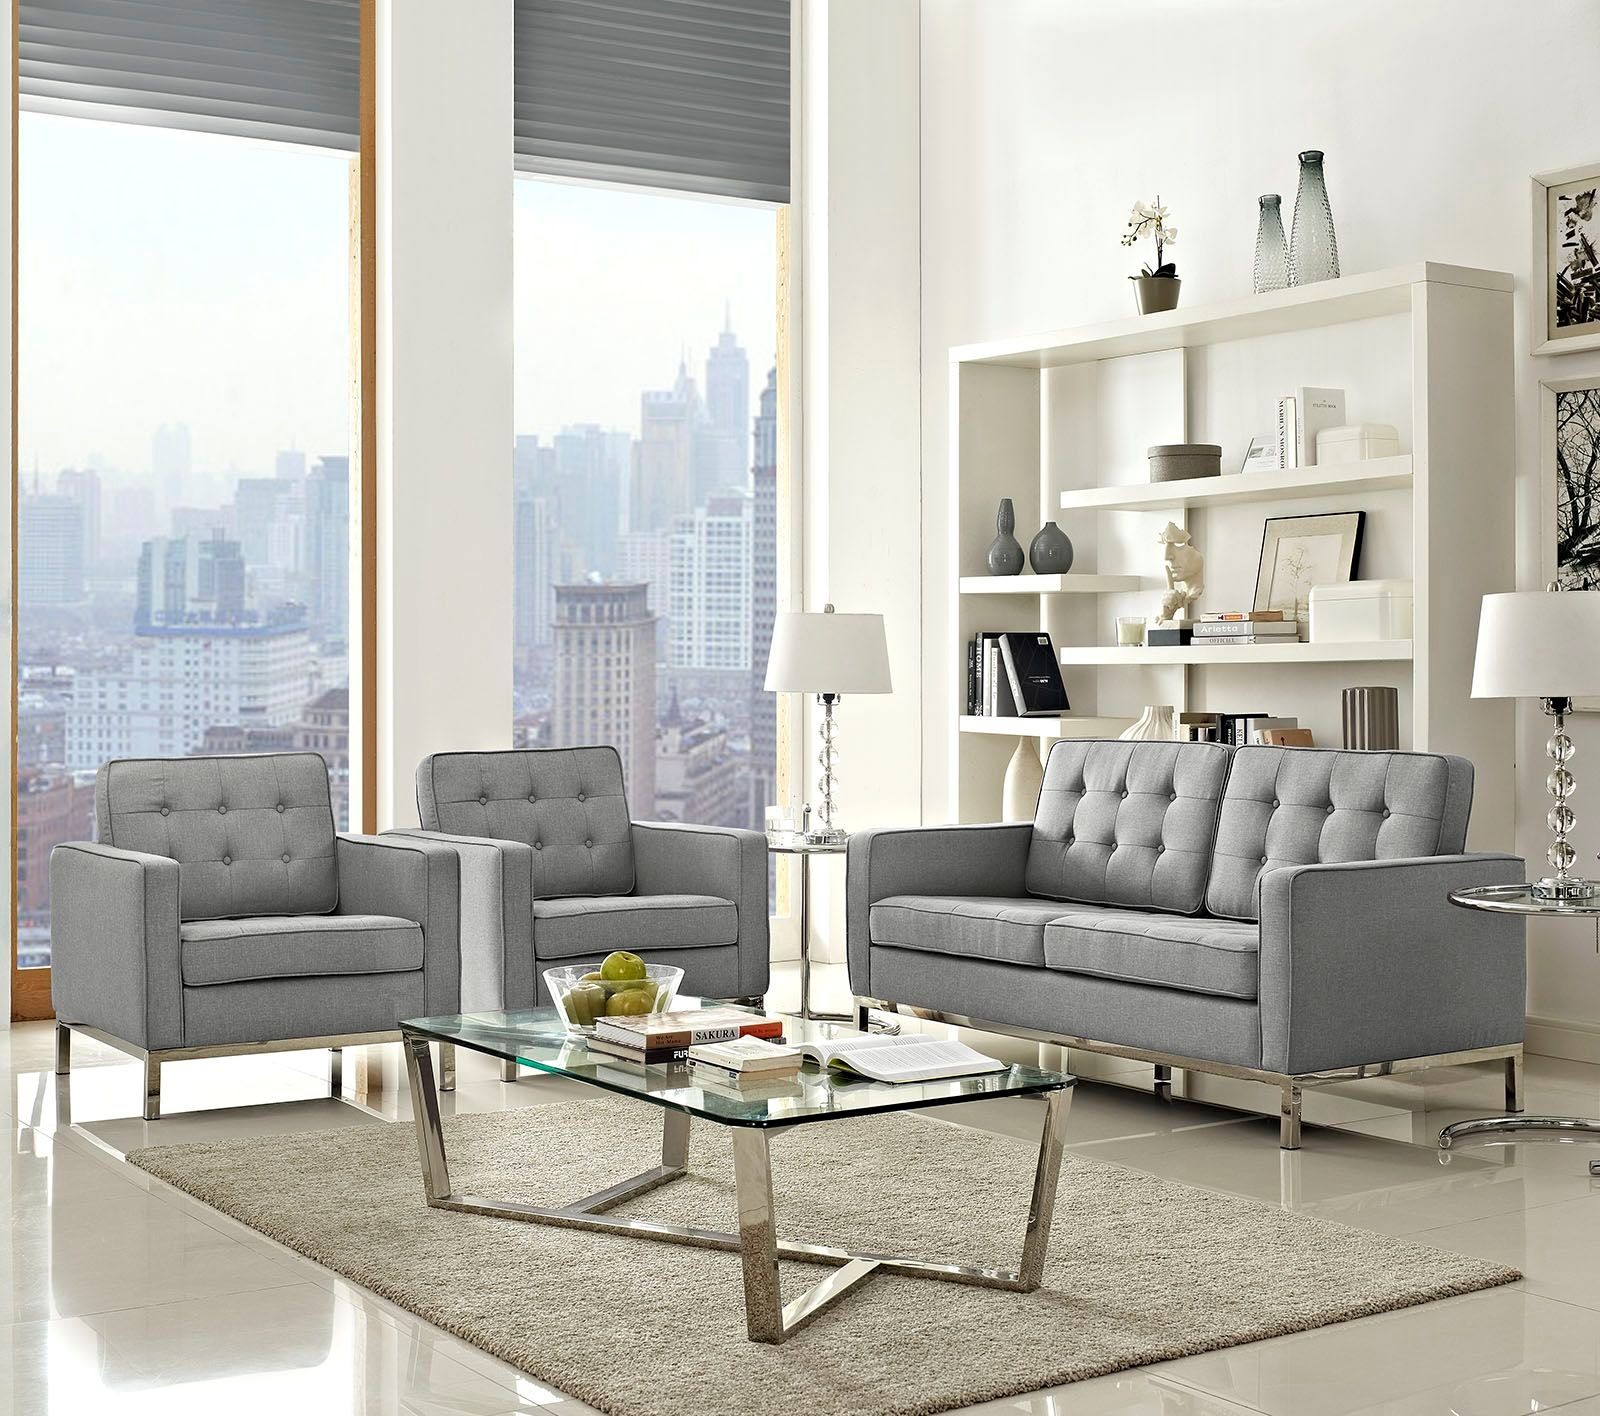 Loft Light Gray 3 Piece Upholstered Living Room Set From Renegade Coleman Furniture